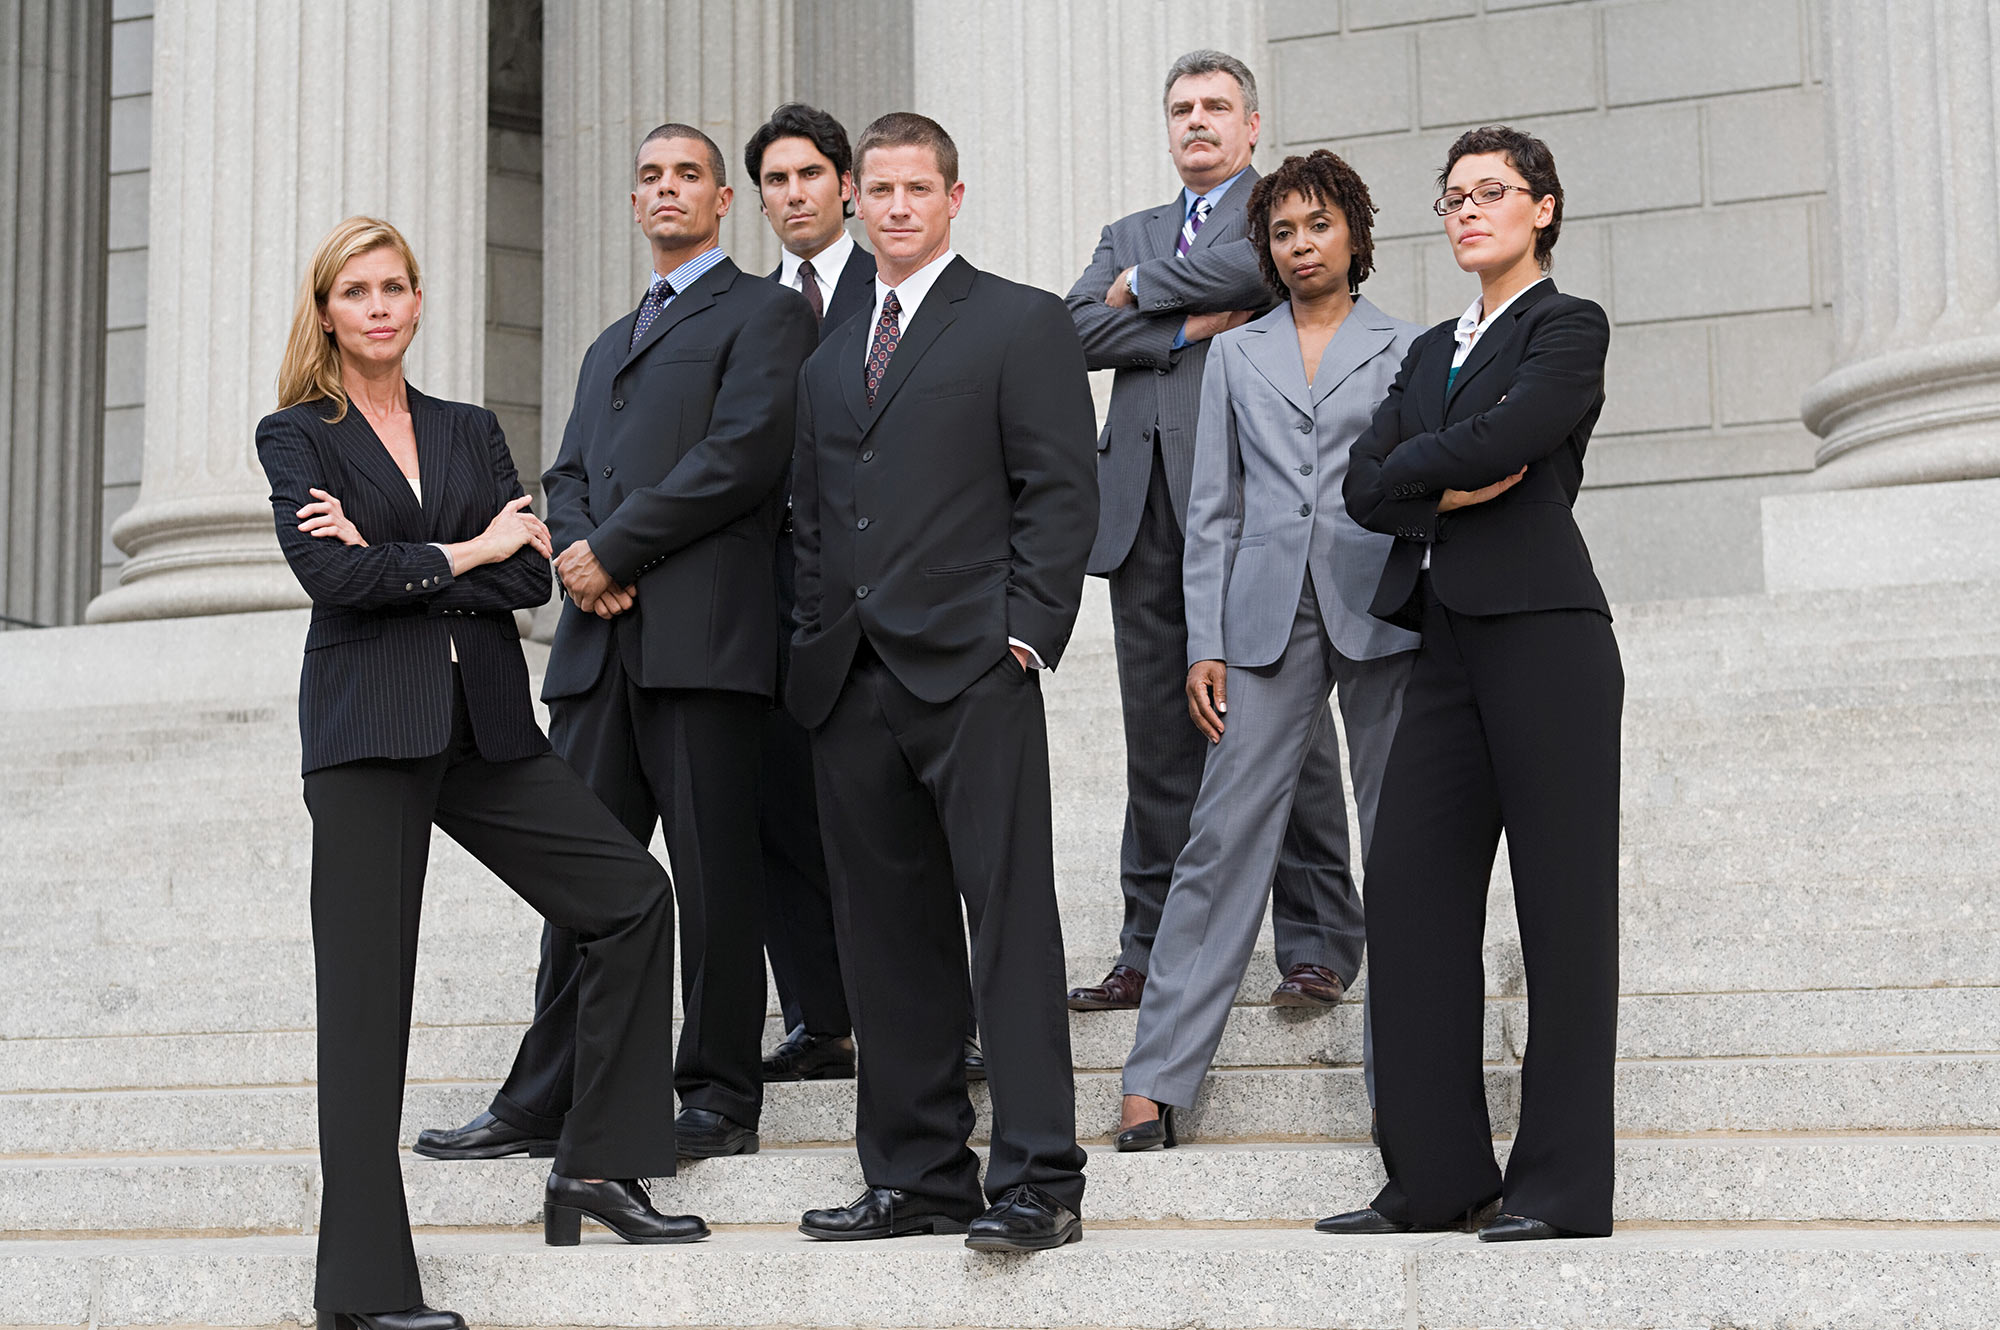 Bad example of a Law Firm photo